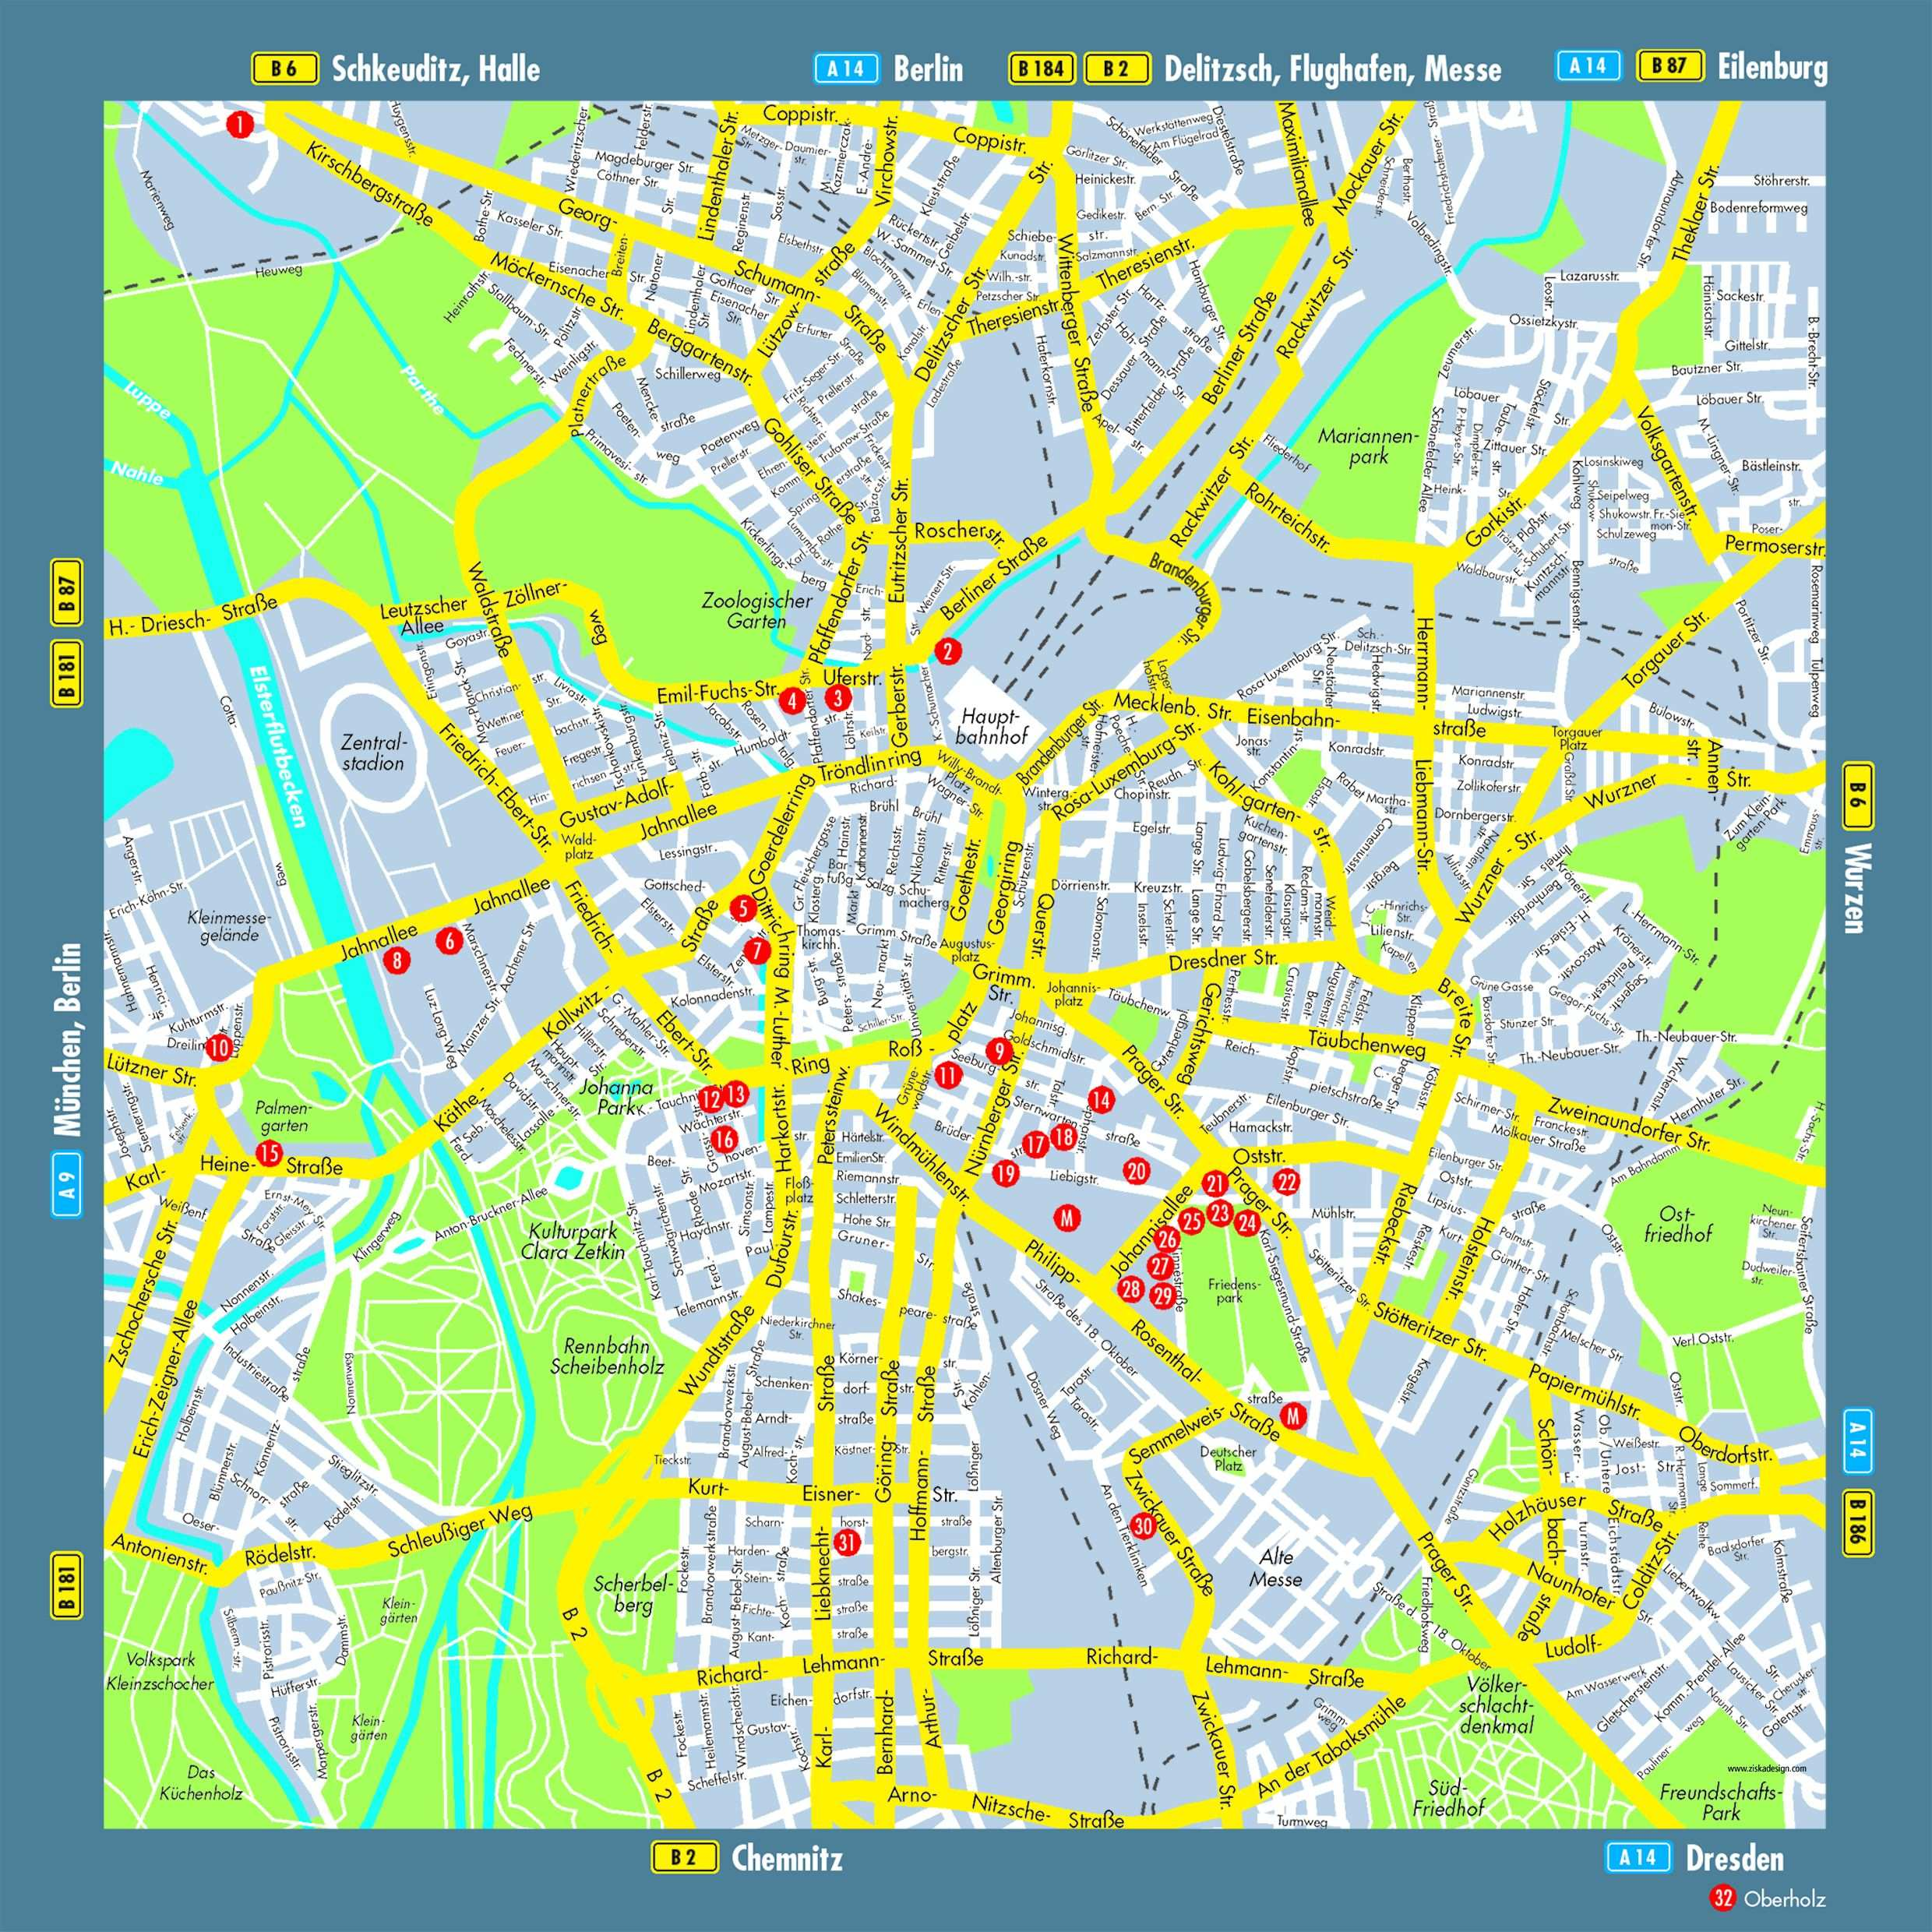 Maps Saarbrücken Large Leipzig Maps For Free Download And Print High Resolution